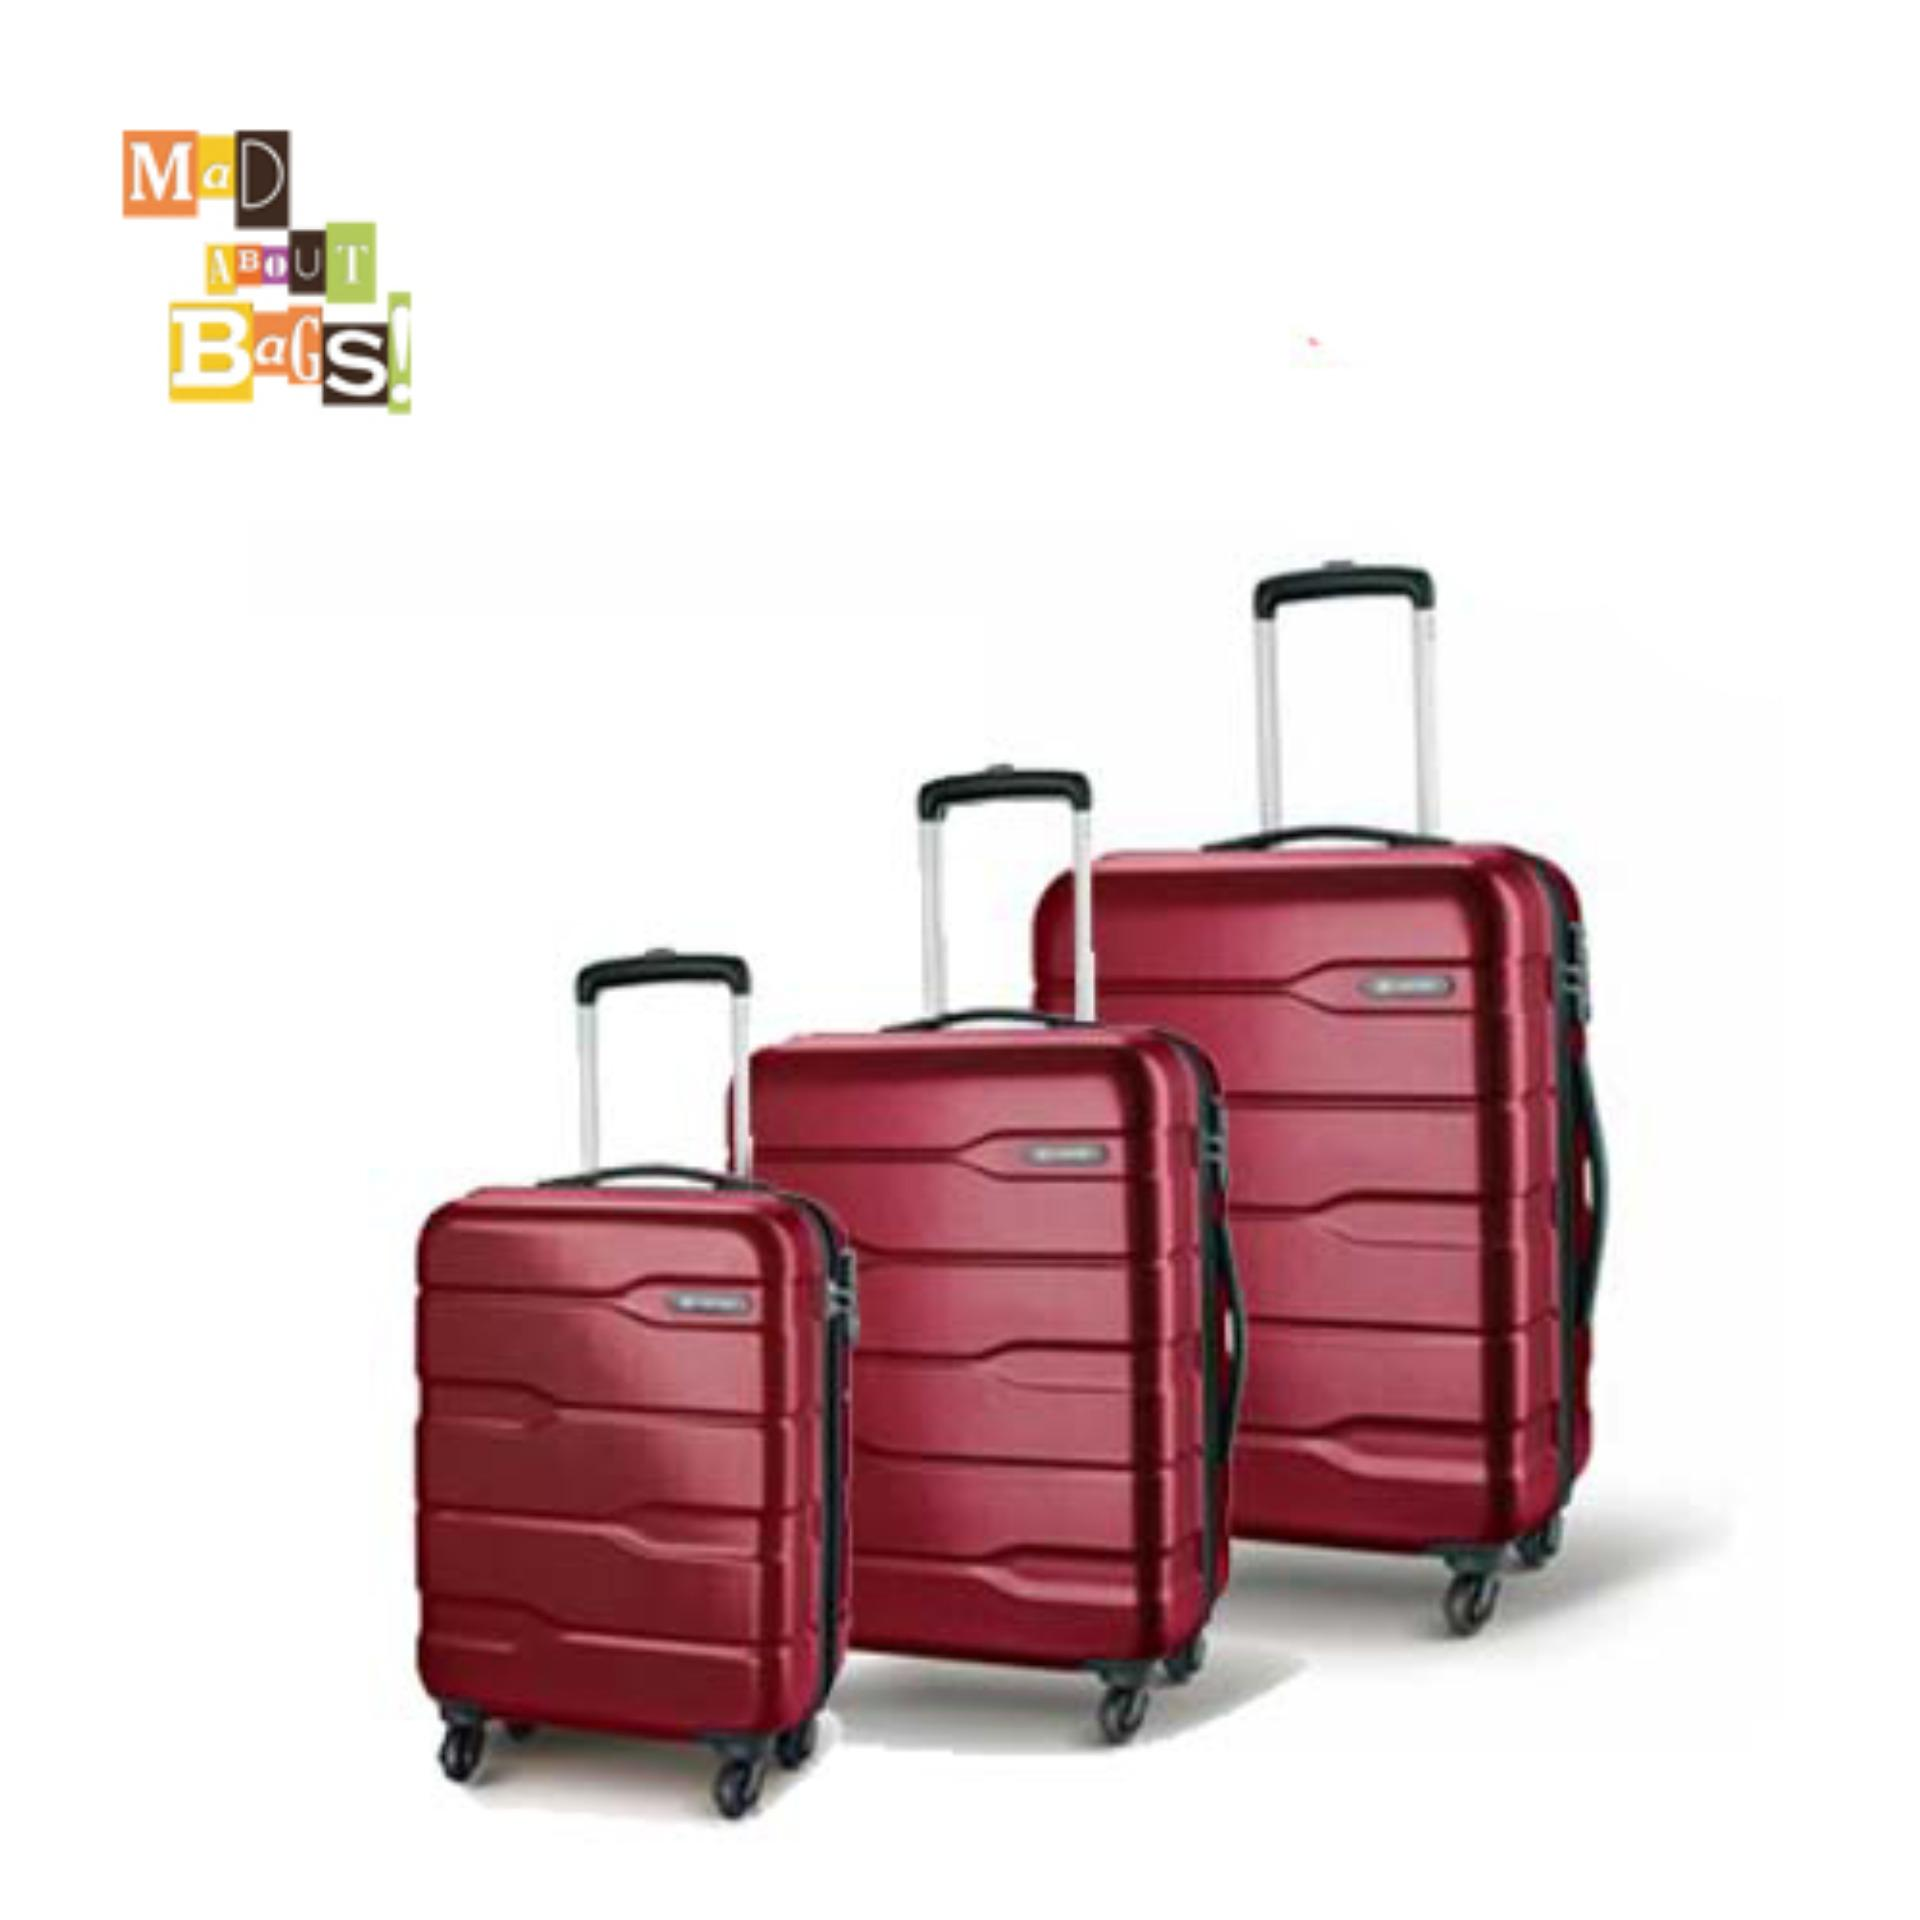 84a6ee47e7c Luggage Price in Nepal - Buy Luggage Bag Online - Daraz.com.np